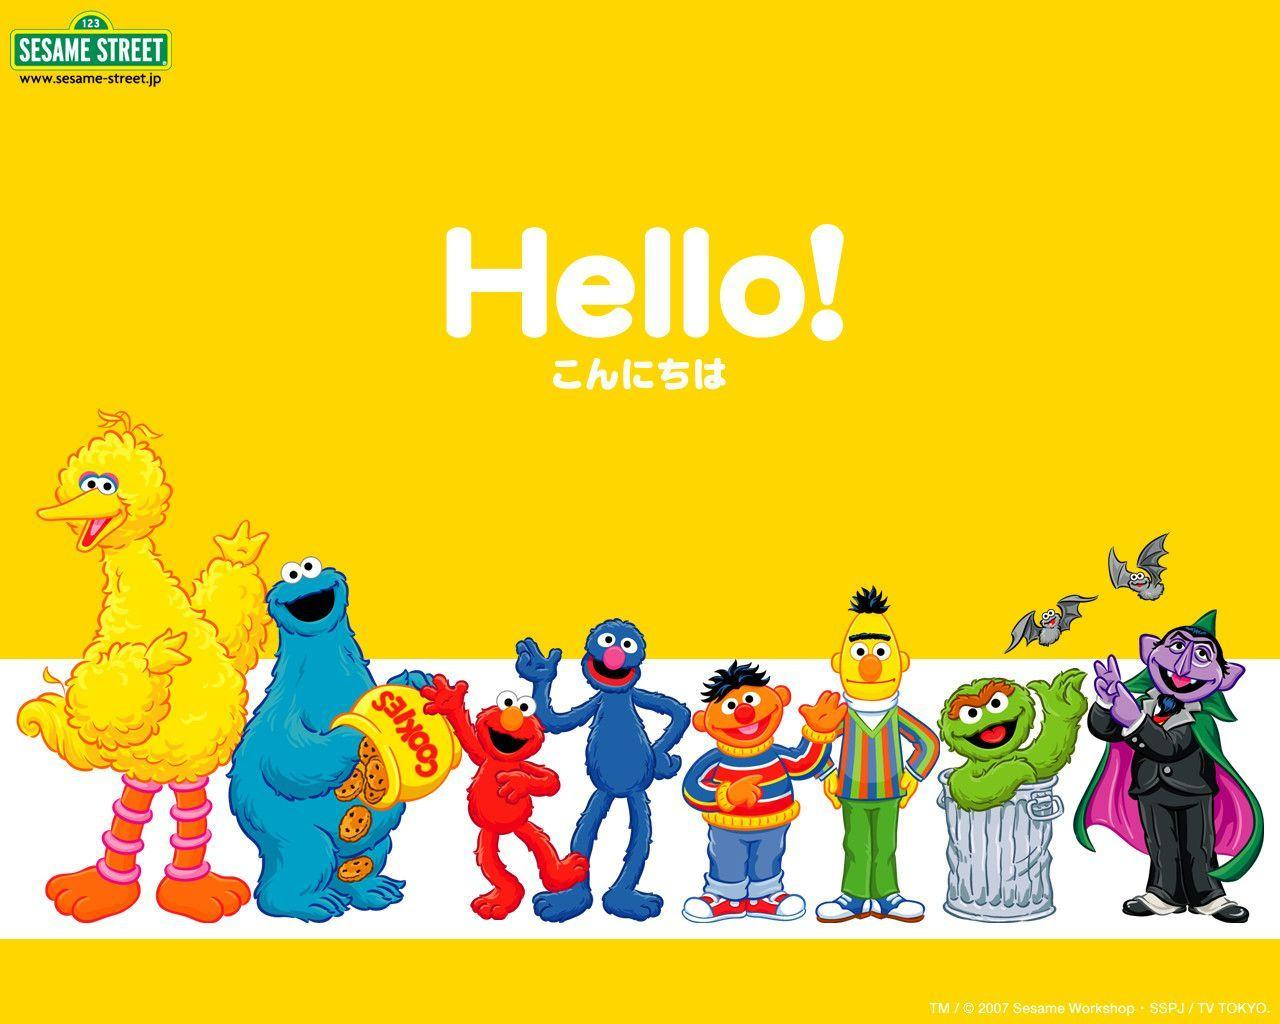 Sesame Street Wallpapers Top Free Sesame Street